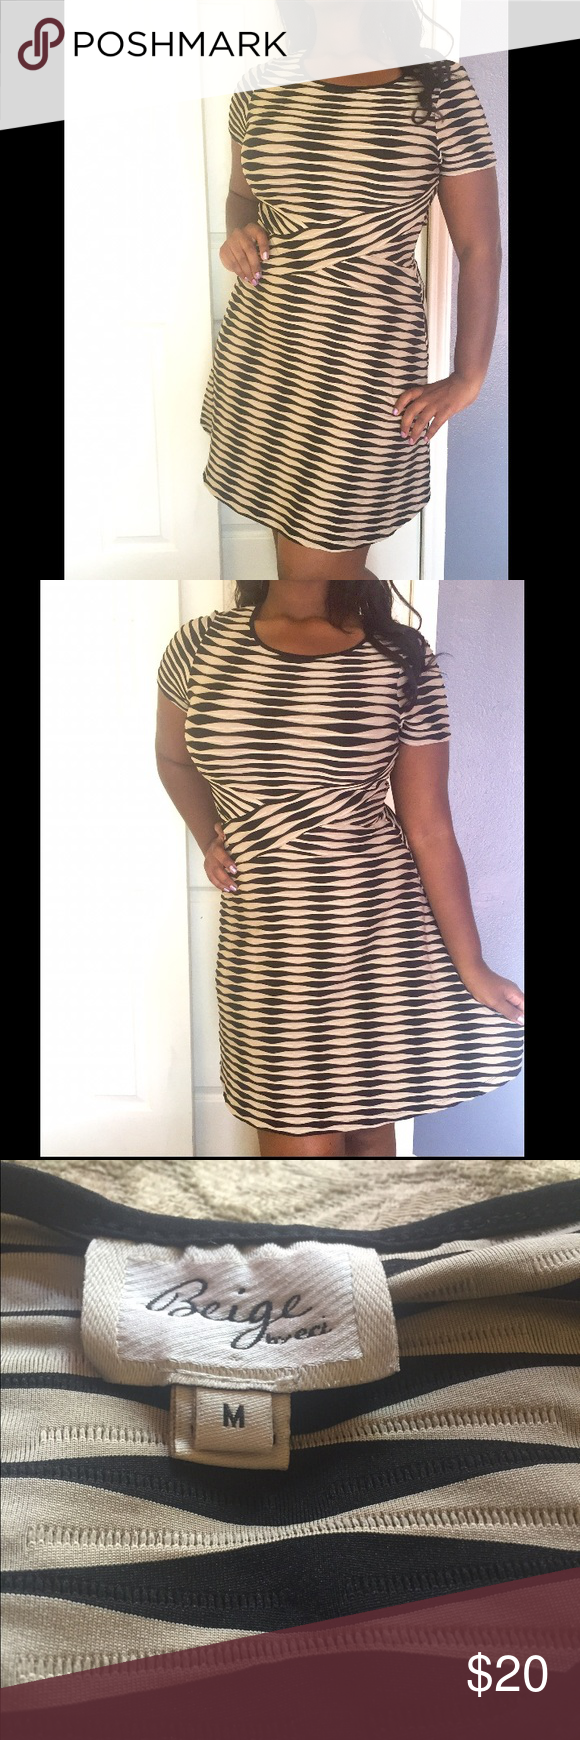 Tan and black dress Tan and black dress. Short sleeves. Stretchy, textured fabric. Size M Beige Dresses Midi